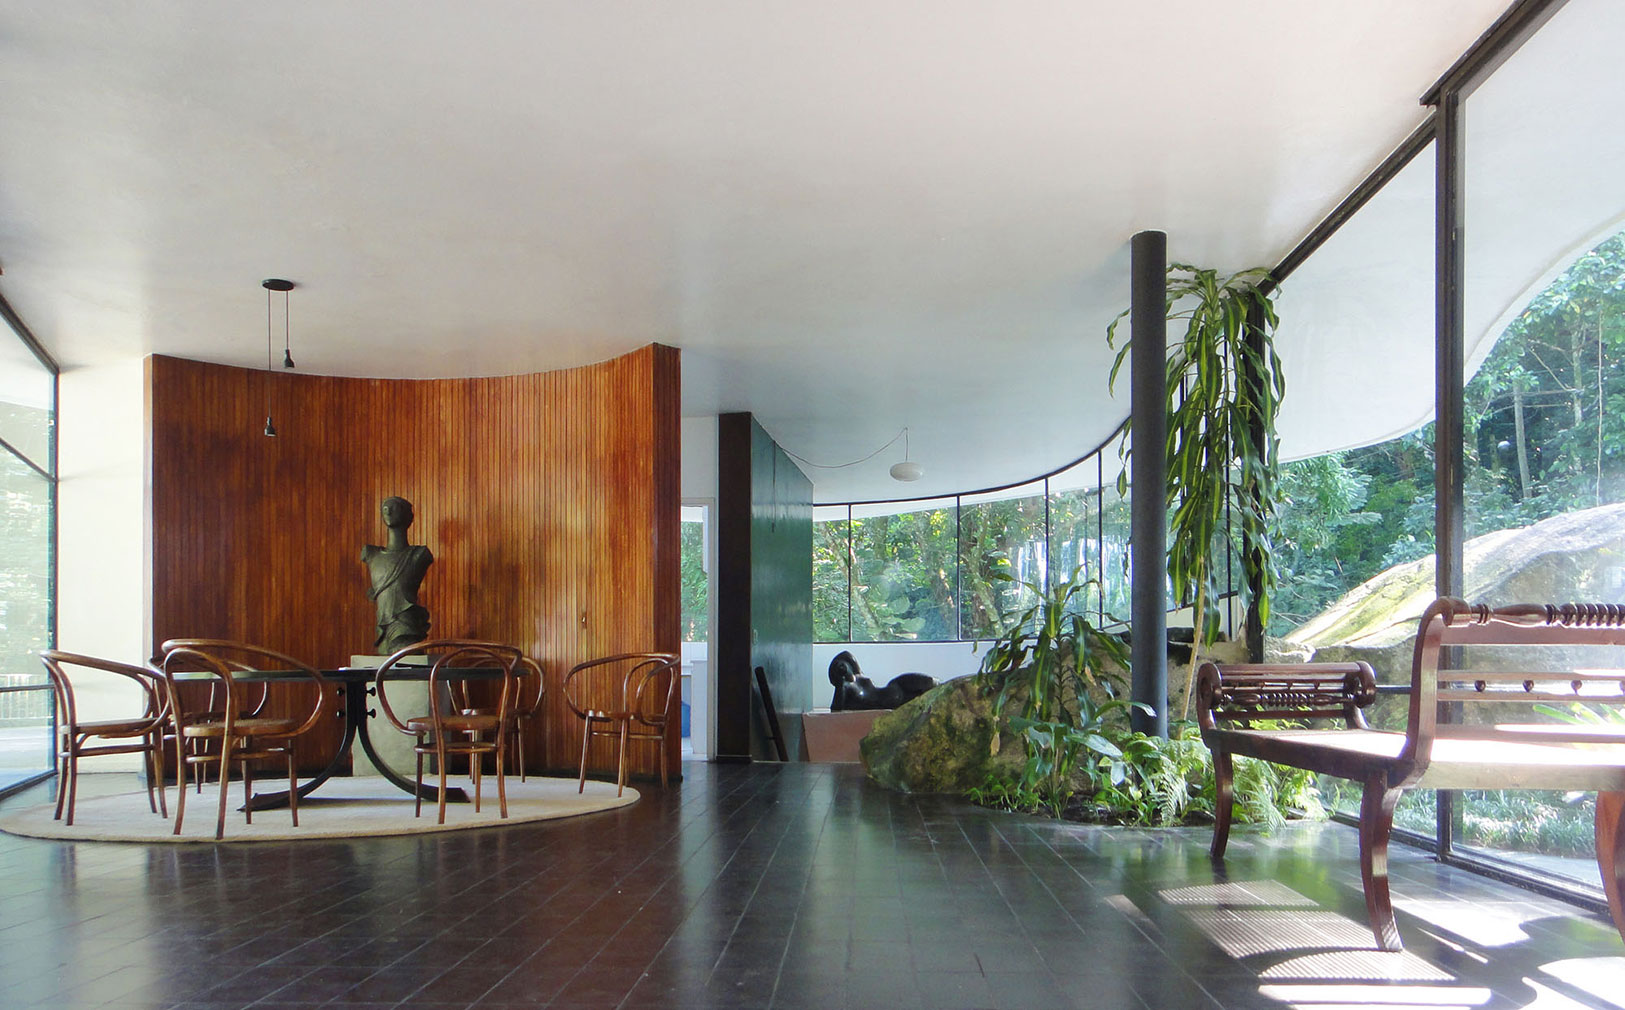 Architects' homes you can visit including Oscar Niemeyer's Casa Das Canoas